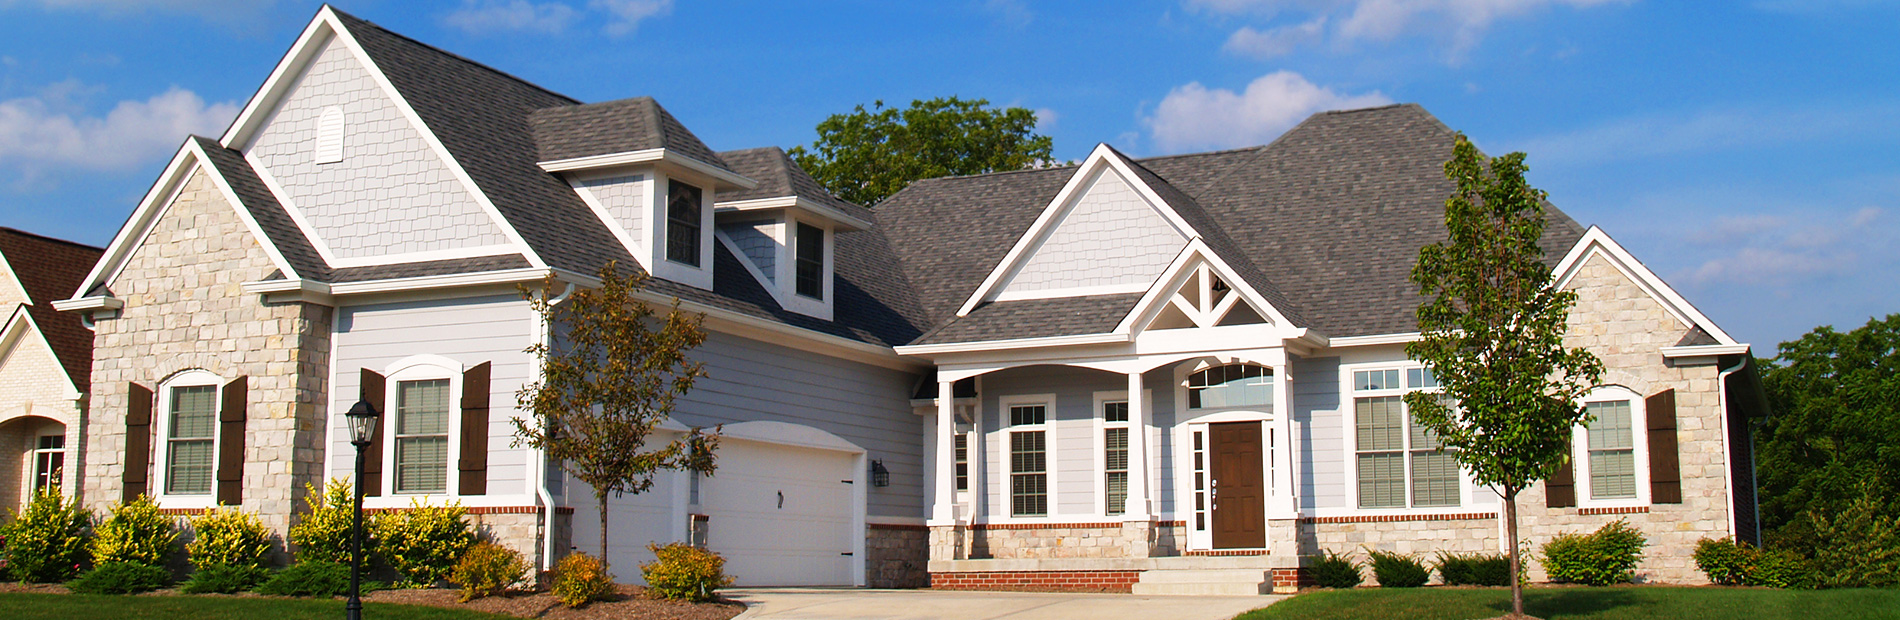 Columbus Ohio Roofing Contractor